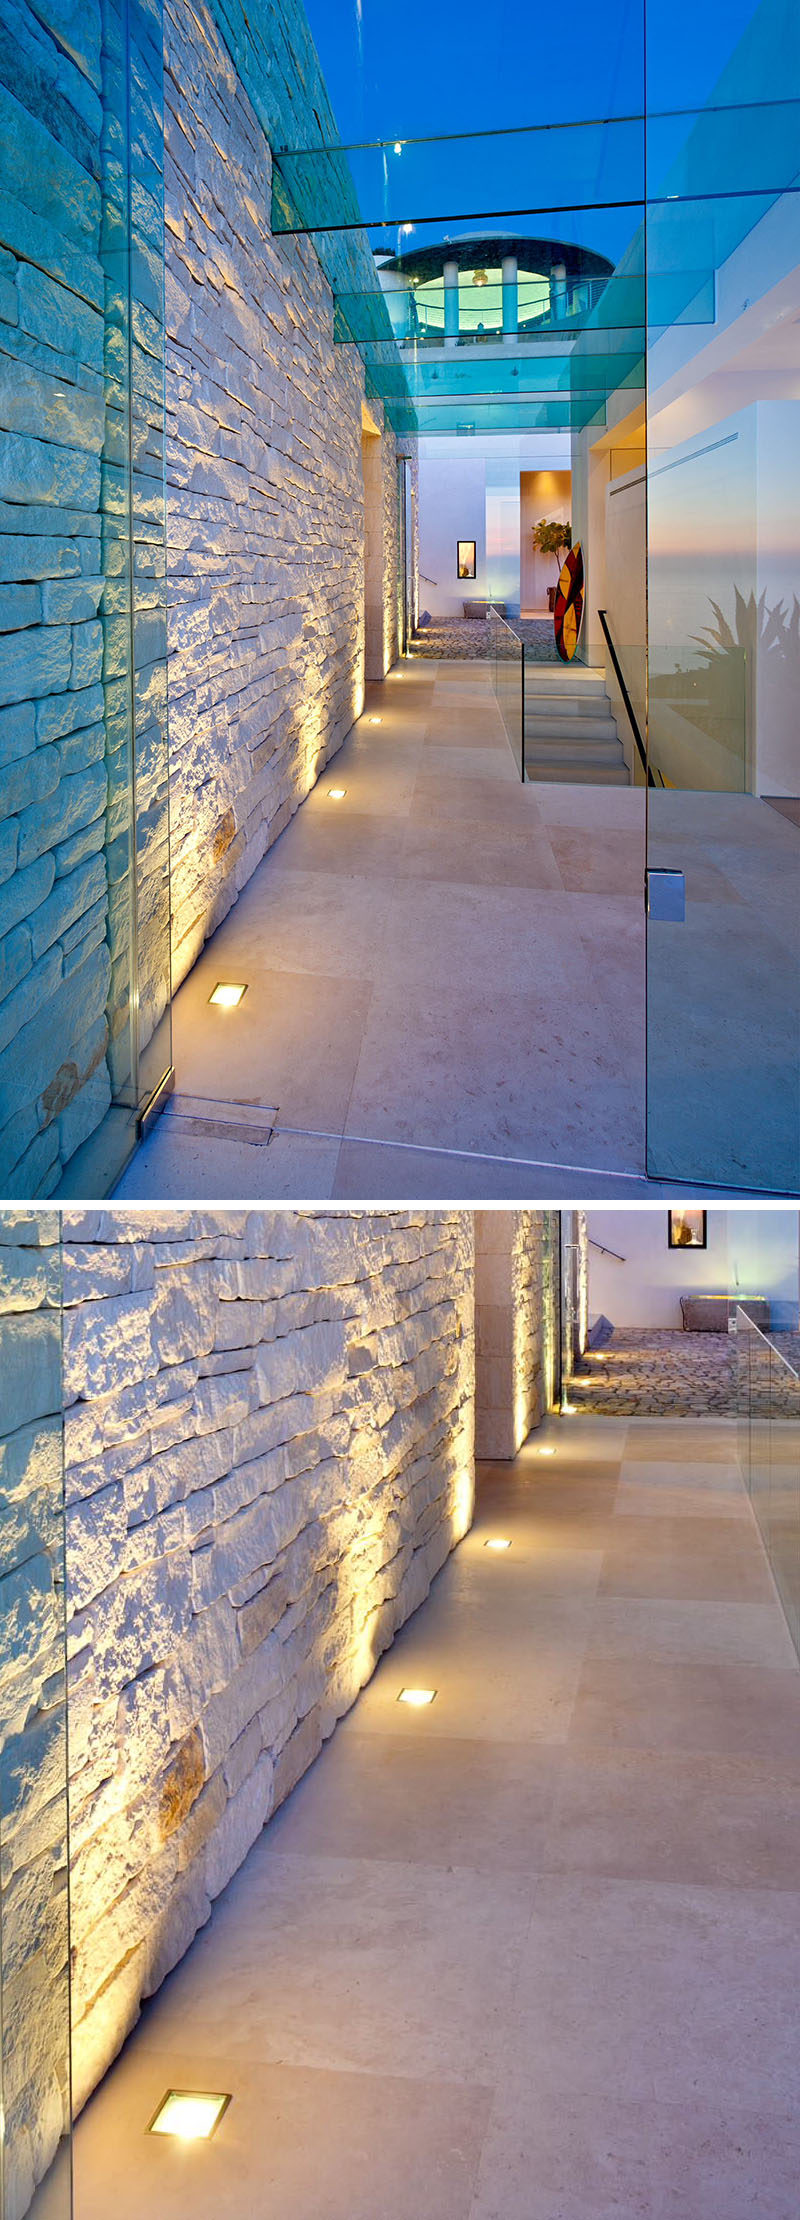 7 Interiors That Use Dramatic Uplighting To Brighten A Space // Warm lights run along the bottom of the entry way wall and highlight the texture of the stones used in the wall.